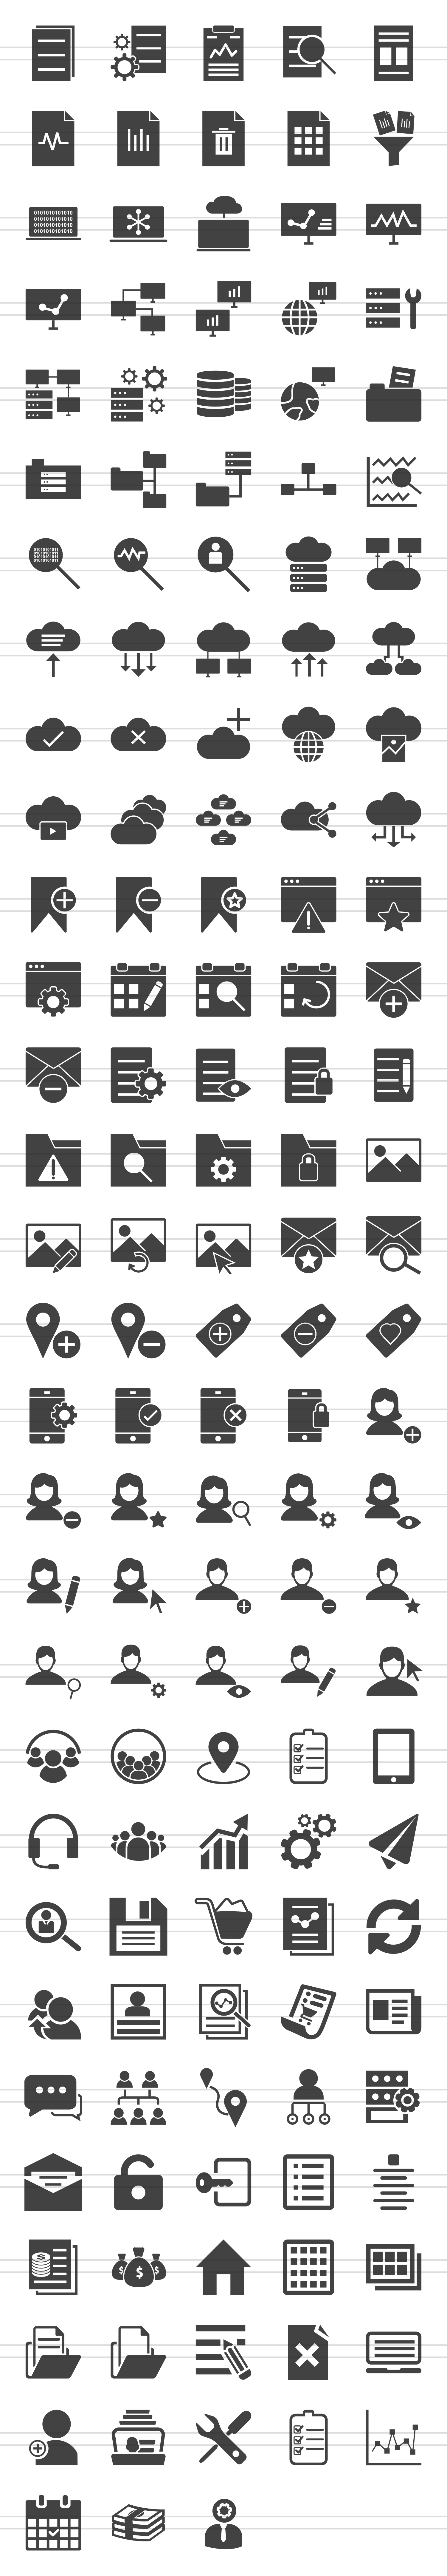 148 Admin Dashboard Glyph Icons example image 2